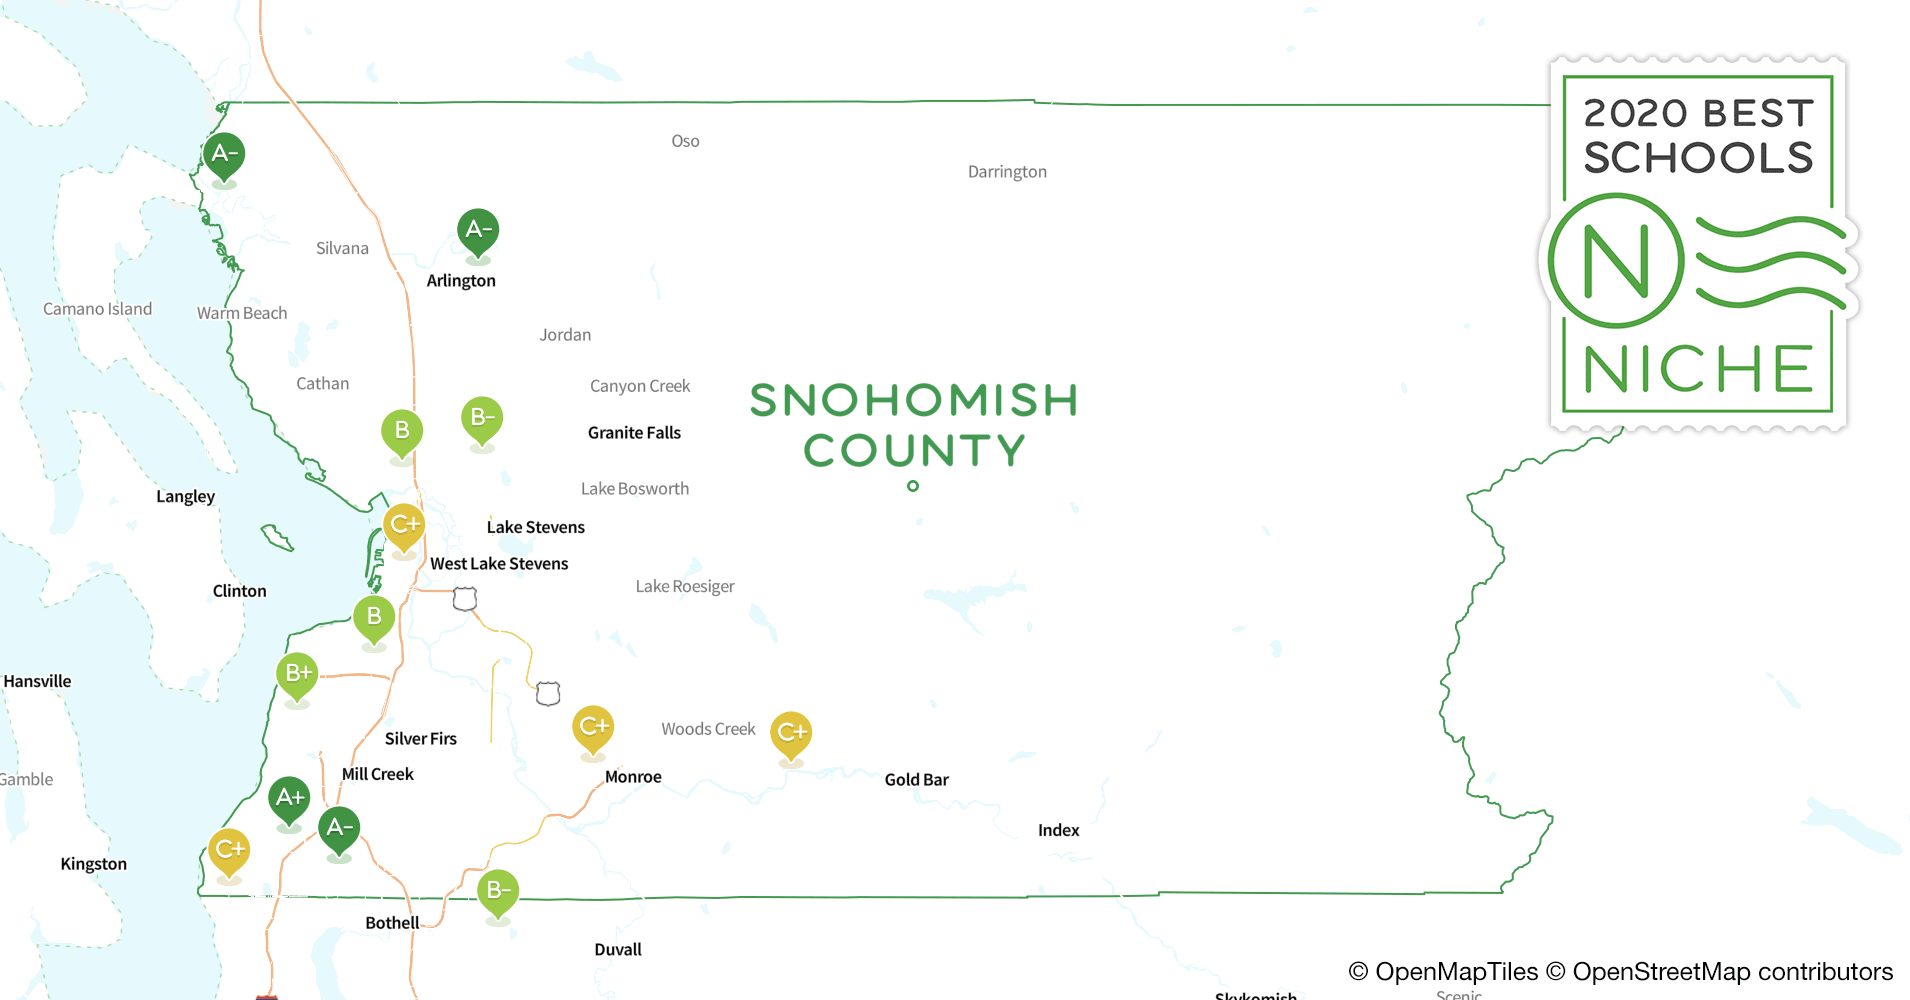 2020 Best Public High s in Snohomish County, WA - Niche Snohomish County Map on jefferson county map, king county map, snohomish wa, city of marysville map, whatcom county map, everett map, kitsap county map, dayton county map, riley county ks map, pierce county map, washington map, mount vernon map, deer park county map, skagit county map, clark county map, bothell map, chelan county map, thurston county map, saint paul county map, seattle map,